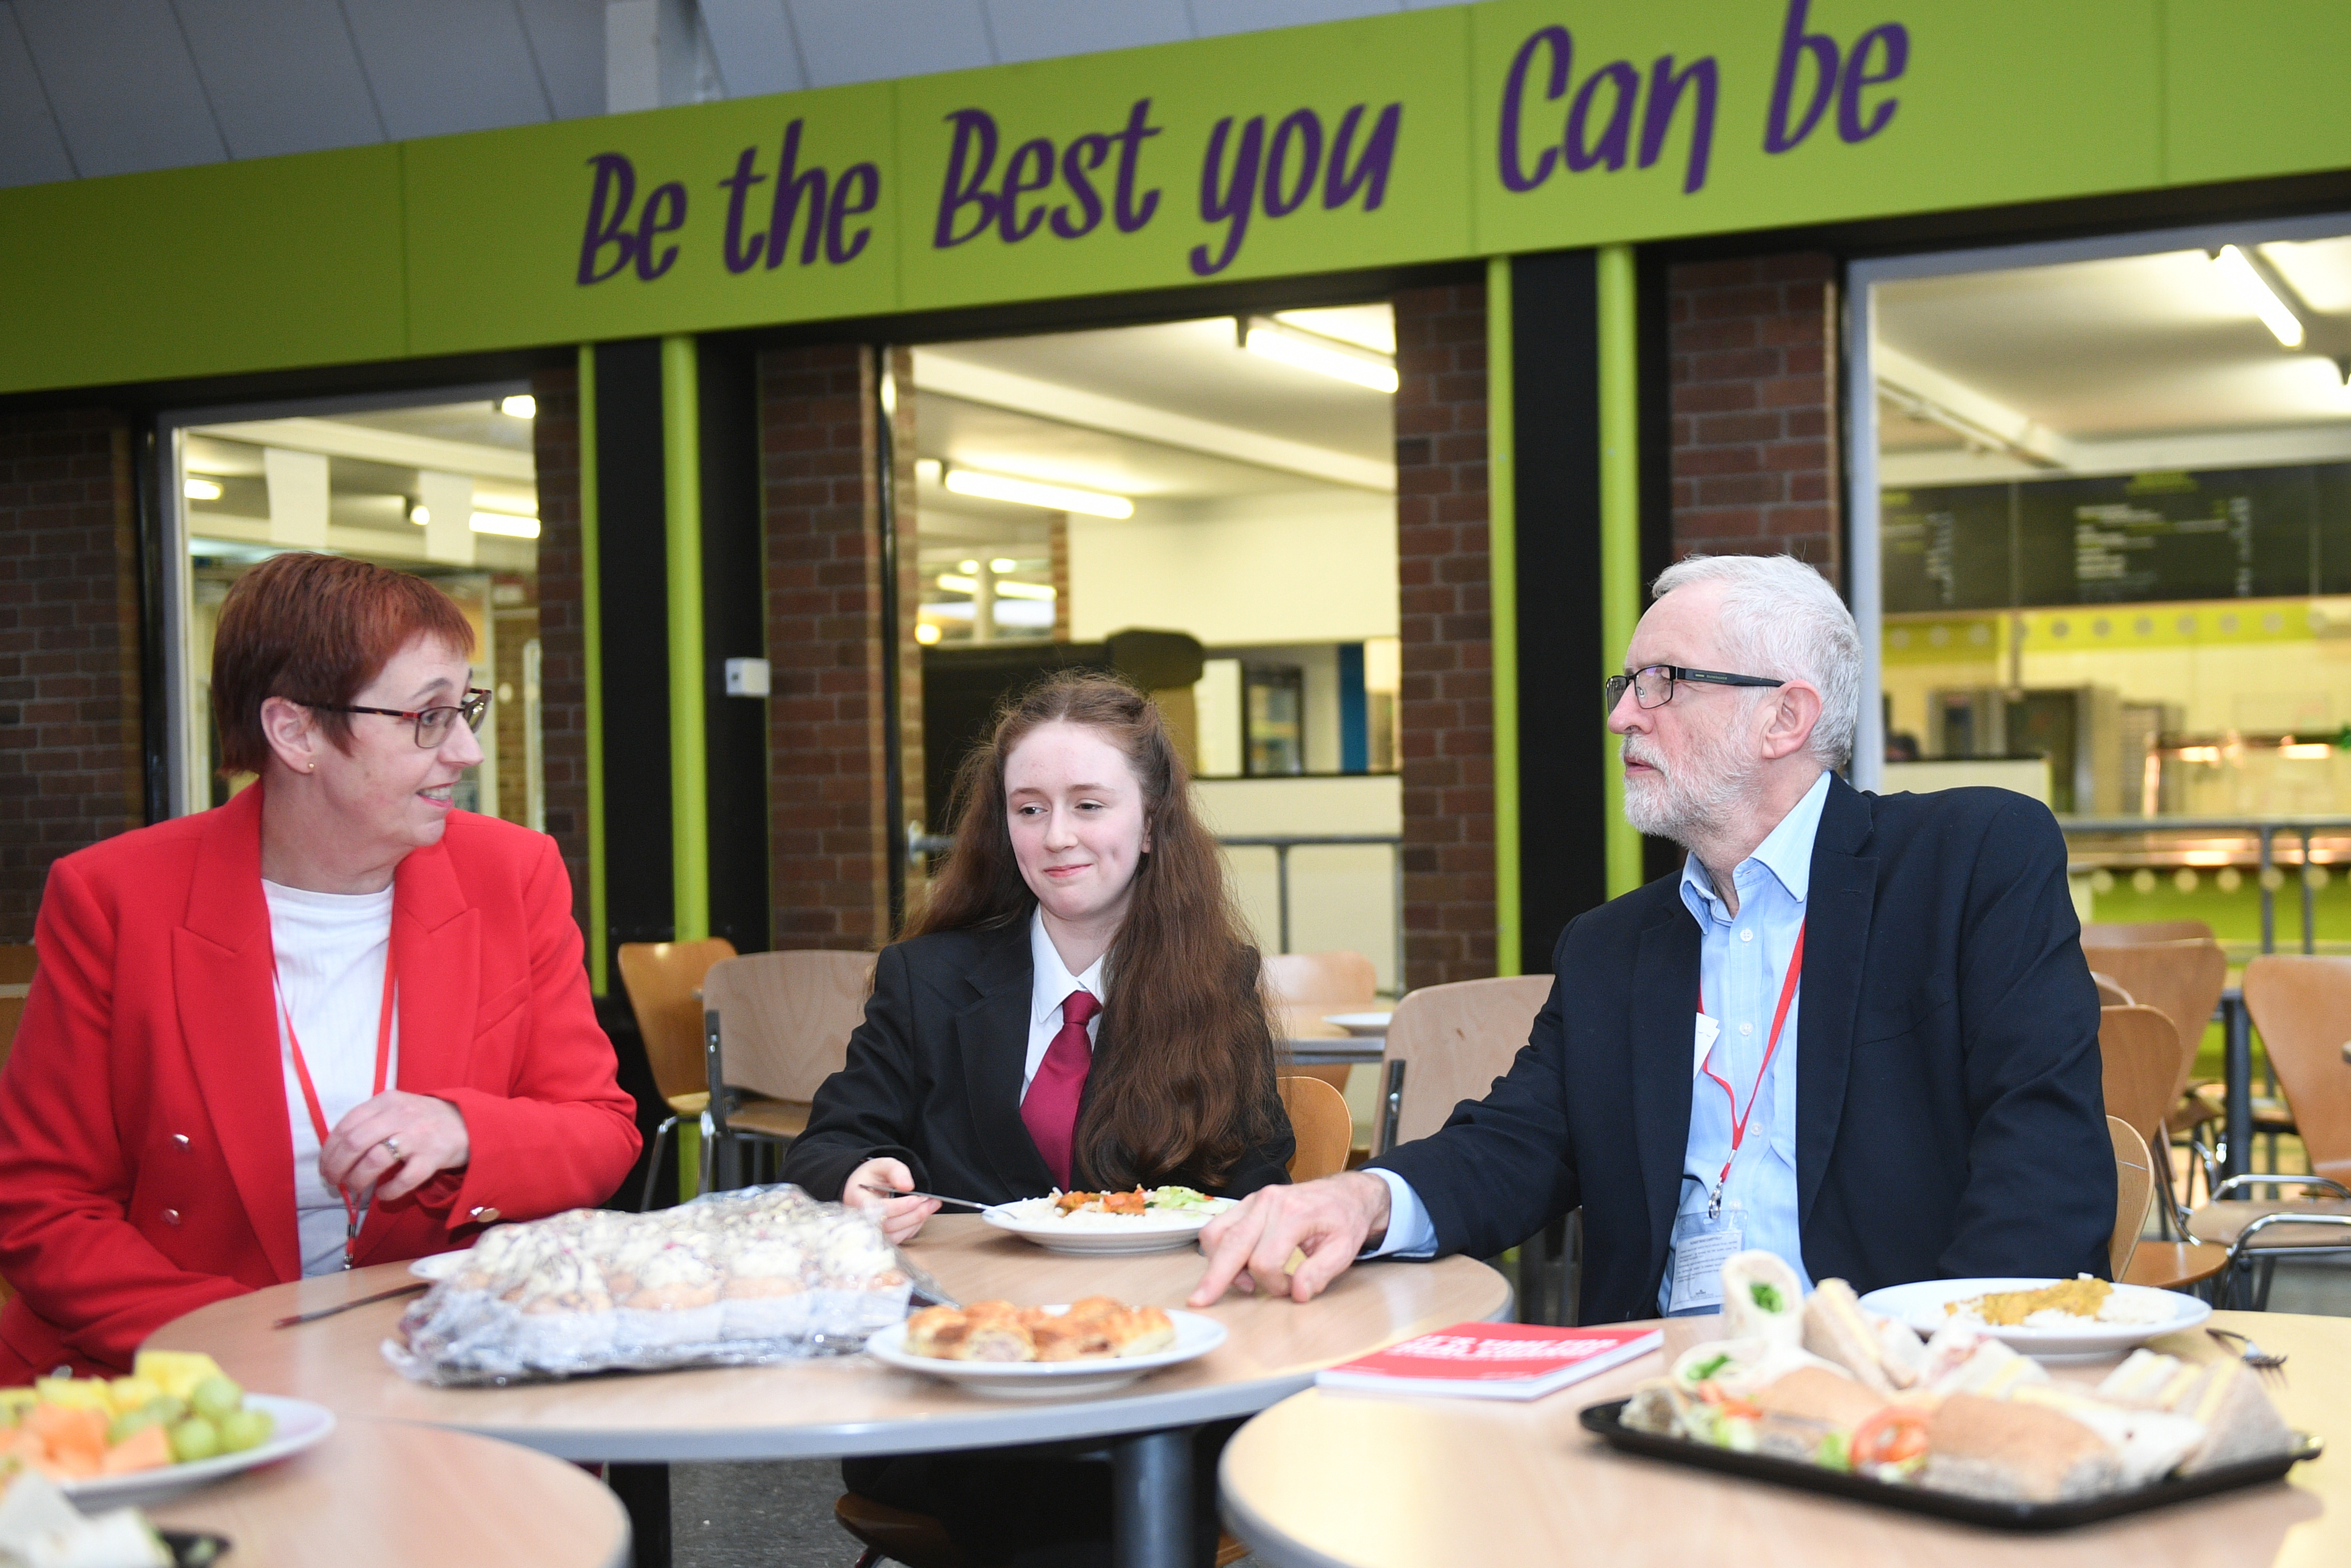 Labour leader Jeremy Corbyn joins students and teachers for a school dinner at Bilton High School in Rugby, while on the General Election campaign trail.